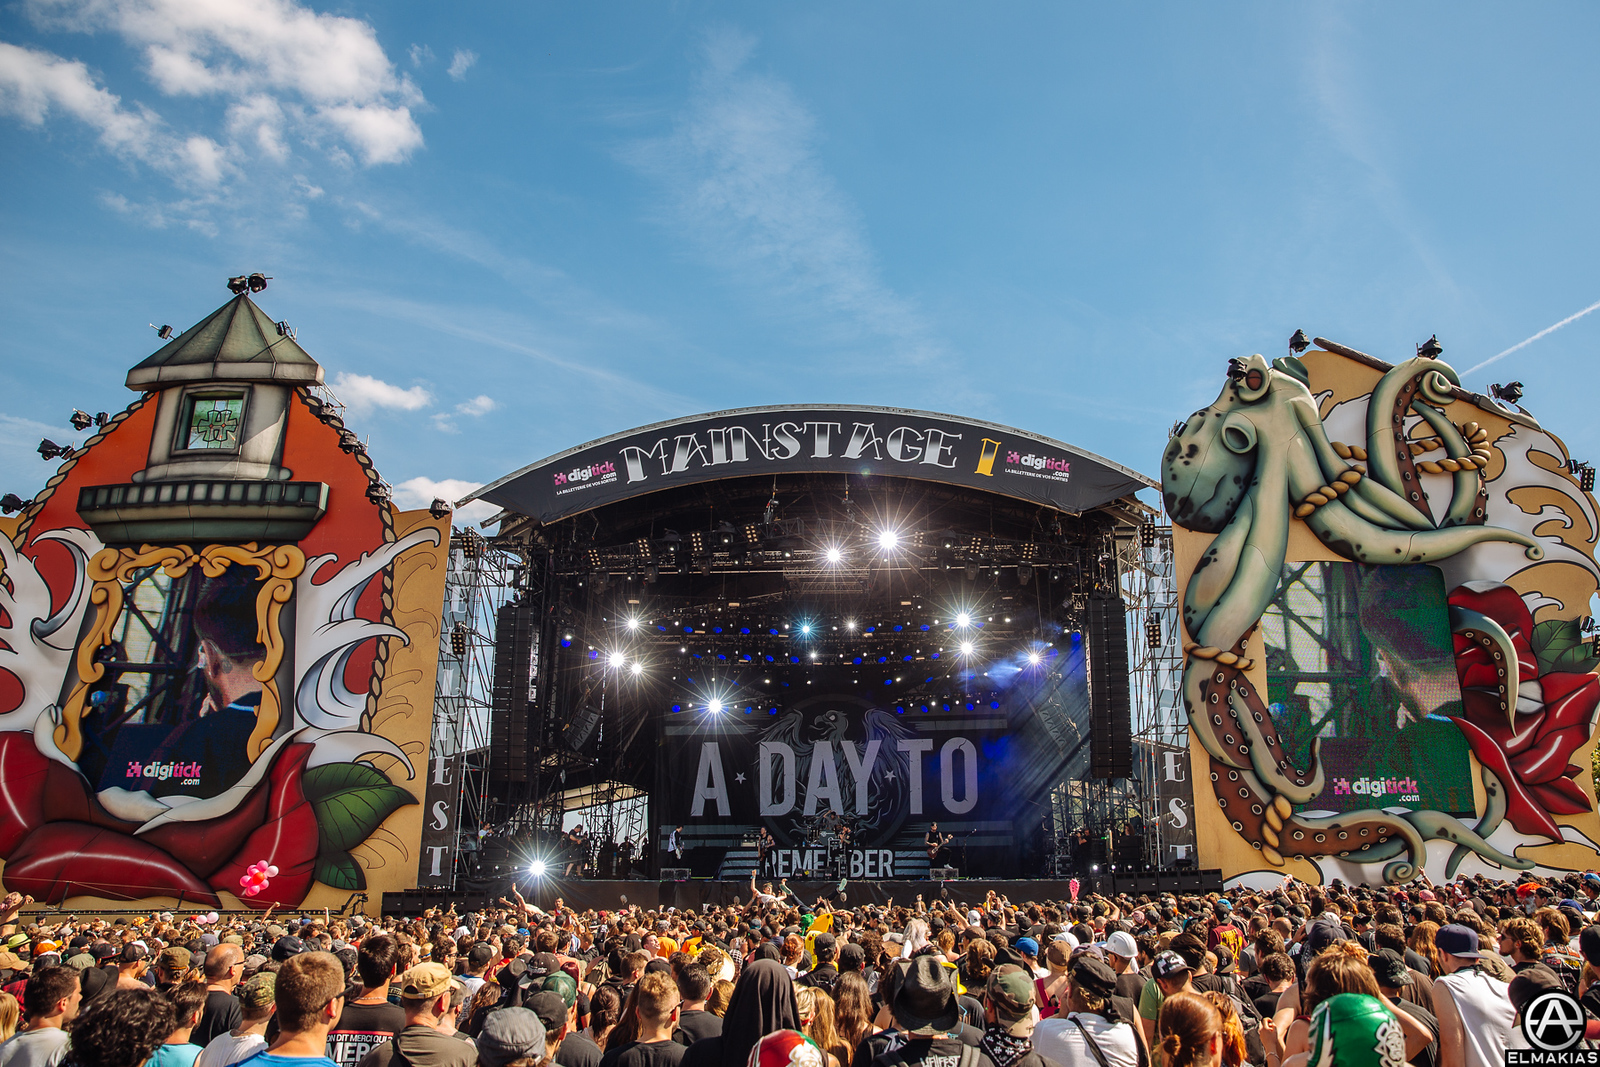 A Day To Remember live at Hellfest in Clisson, France - European Festivals